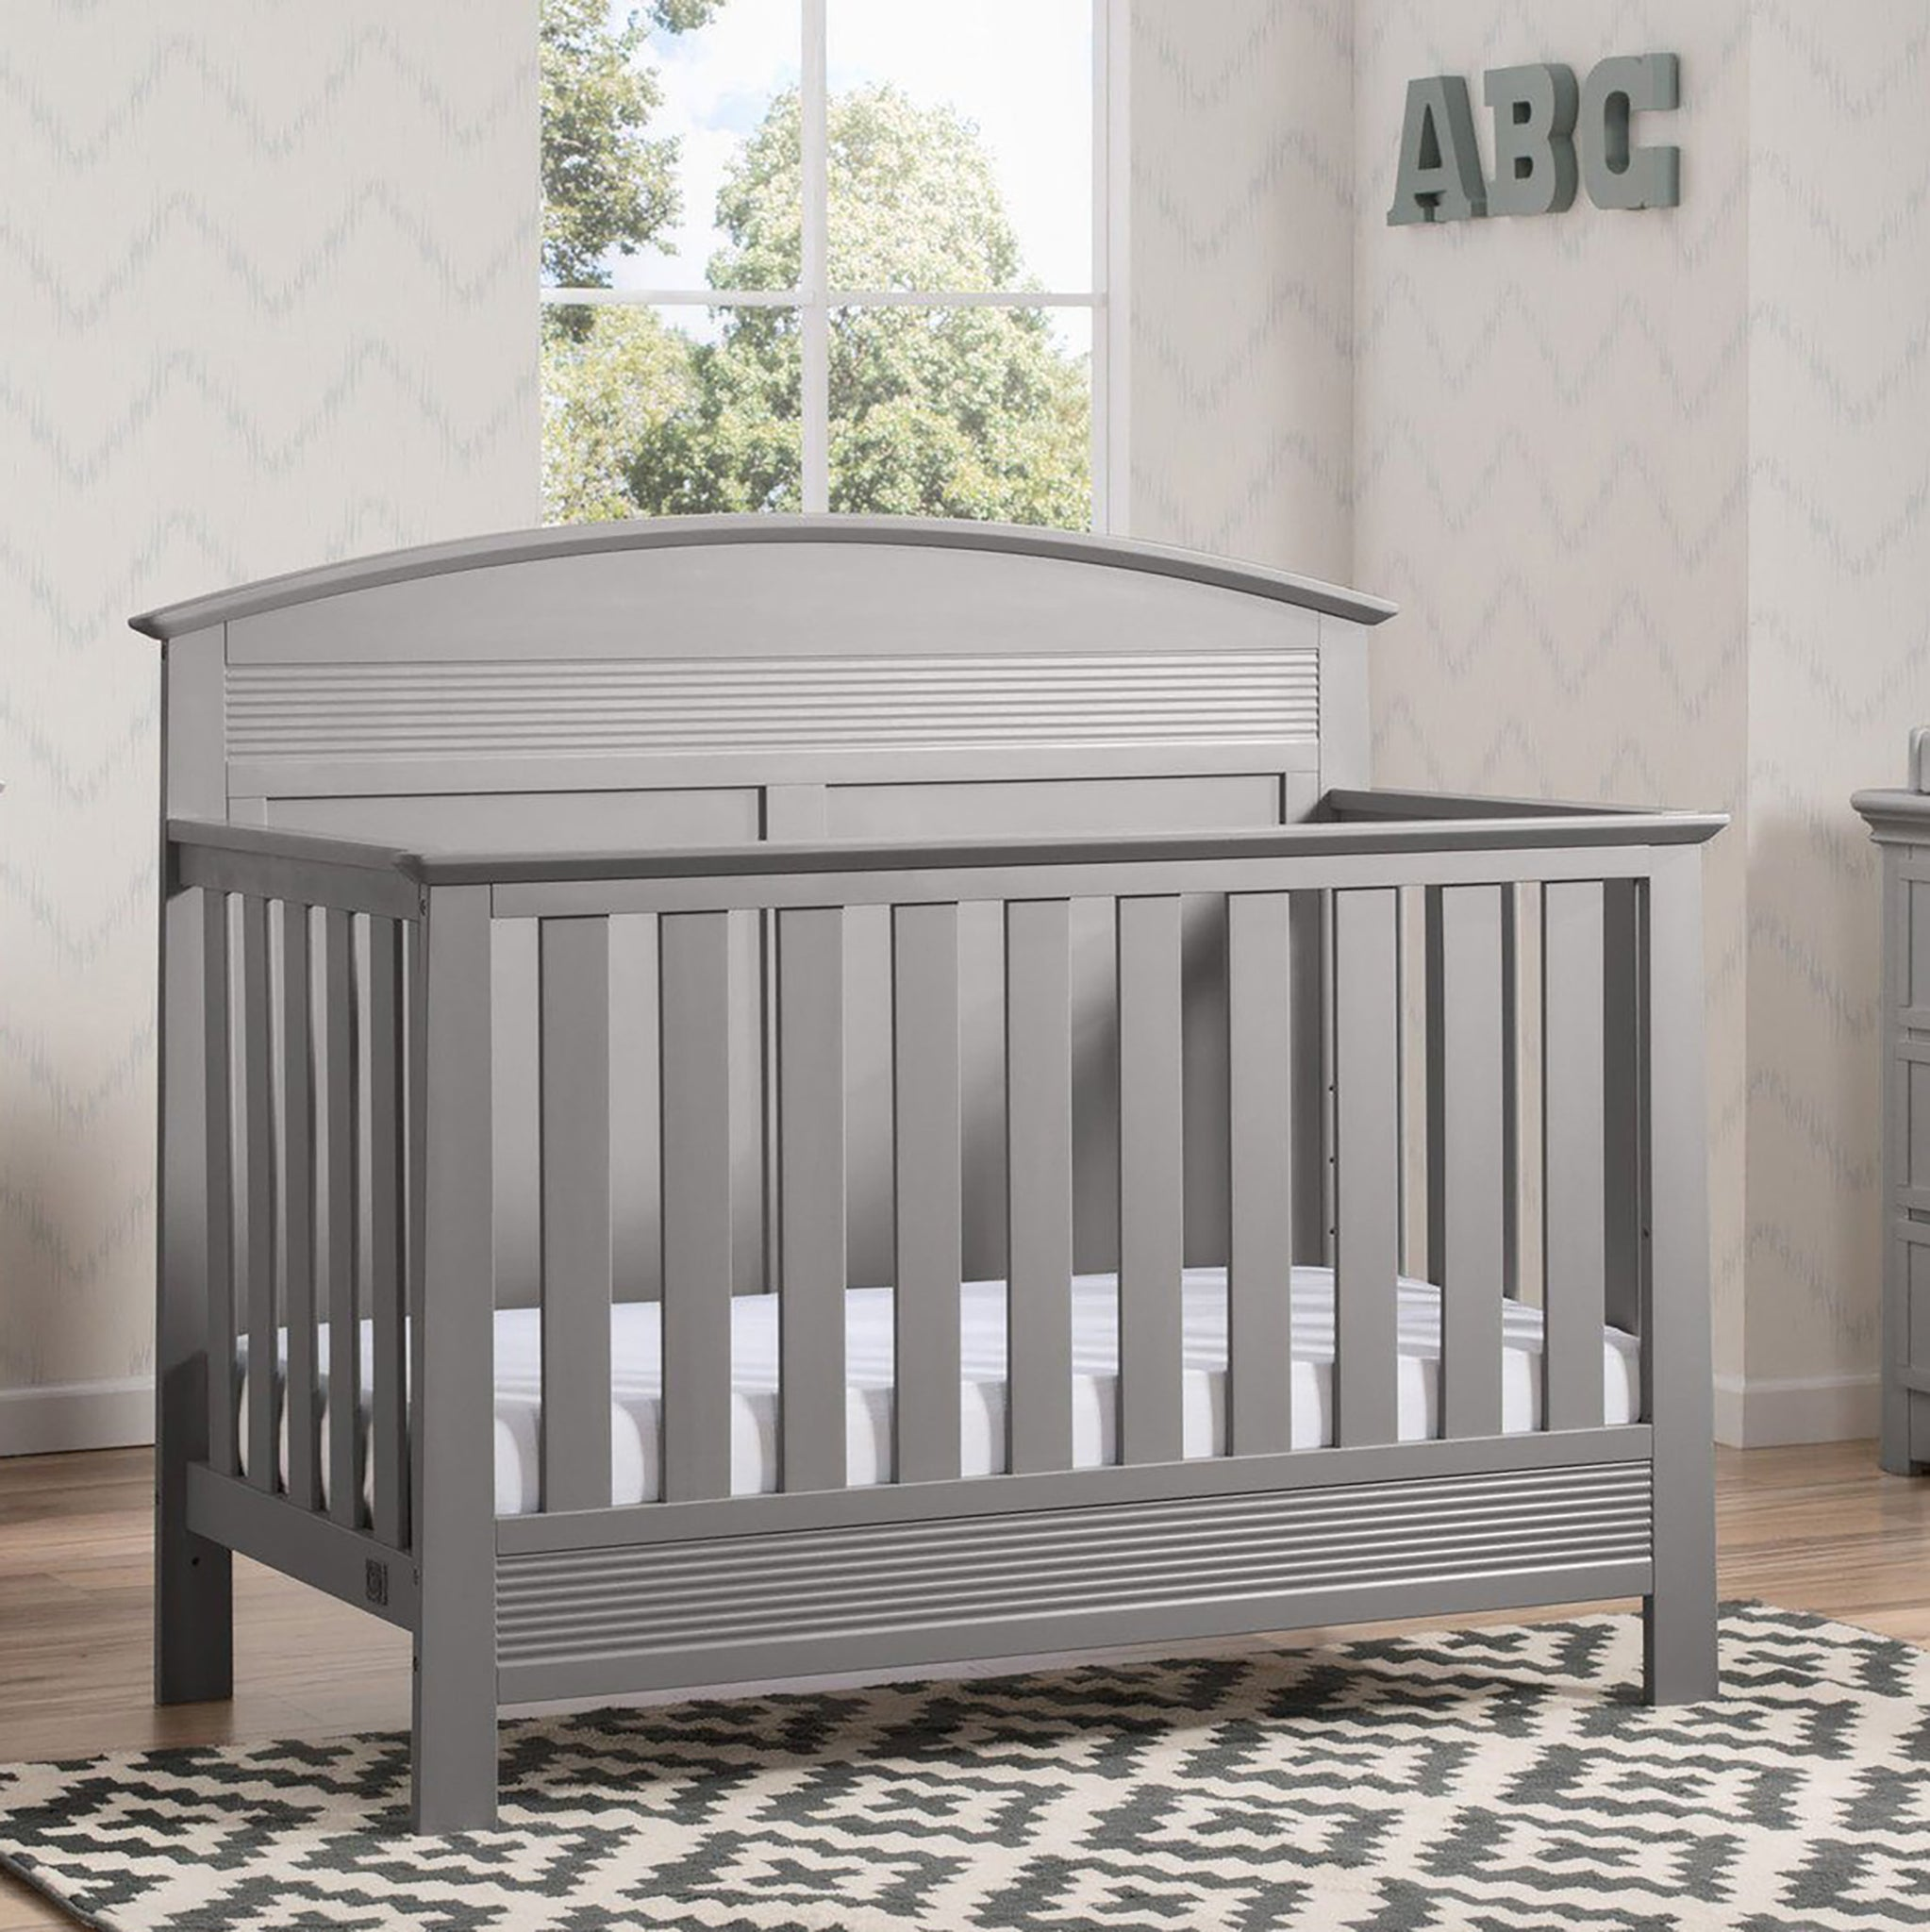 Ashland 4-in-1 Convertible Crib